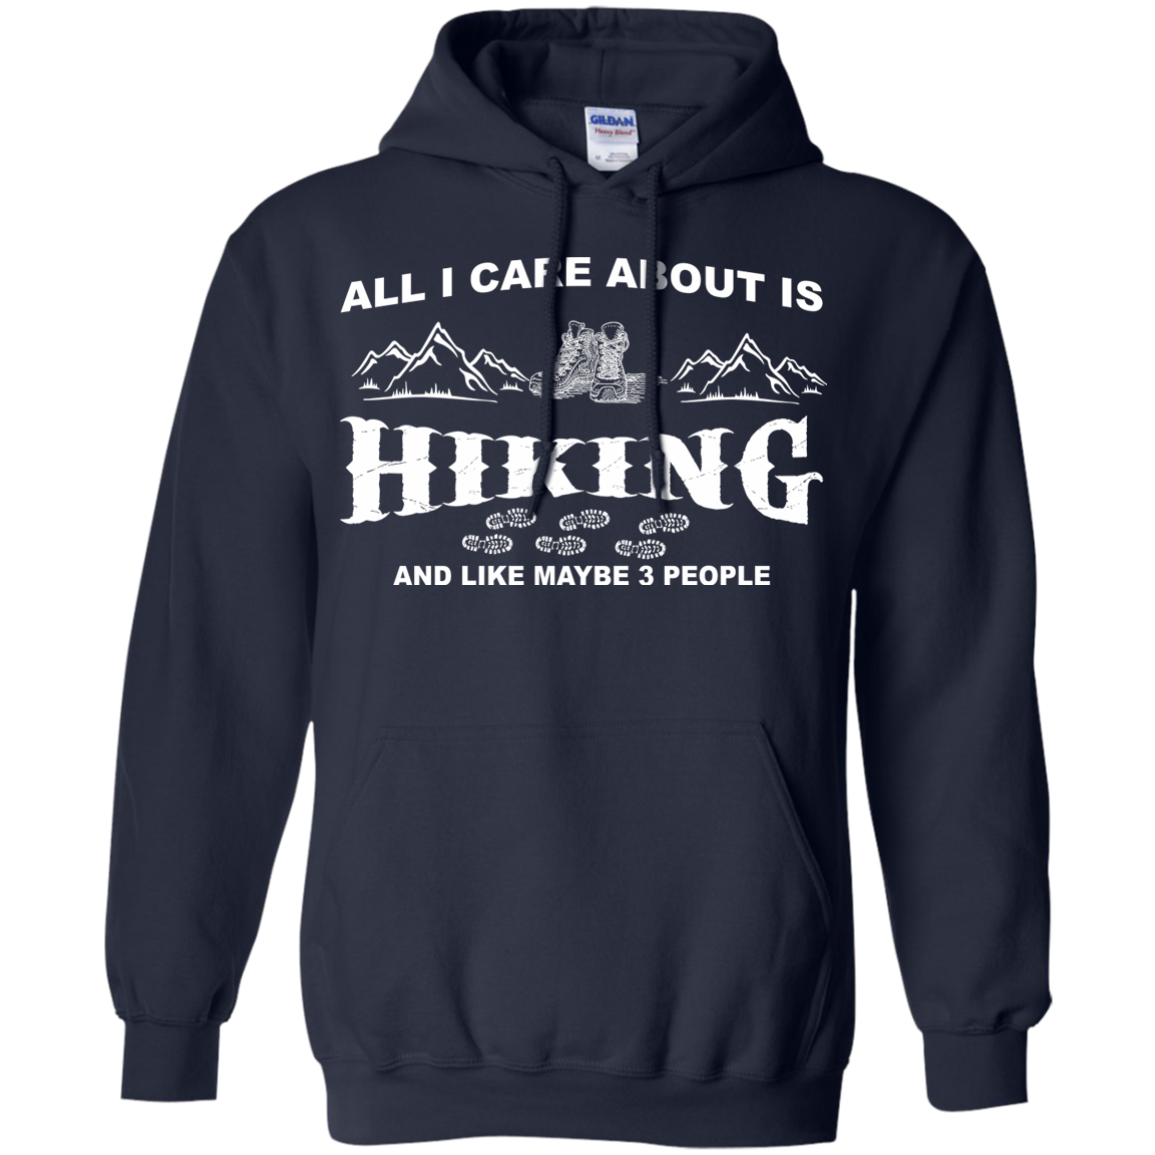 All I Care About Is Hiking And Like Maybe 3 People T-Shirt & Hoodie - The Sun Cat